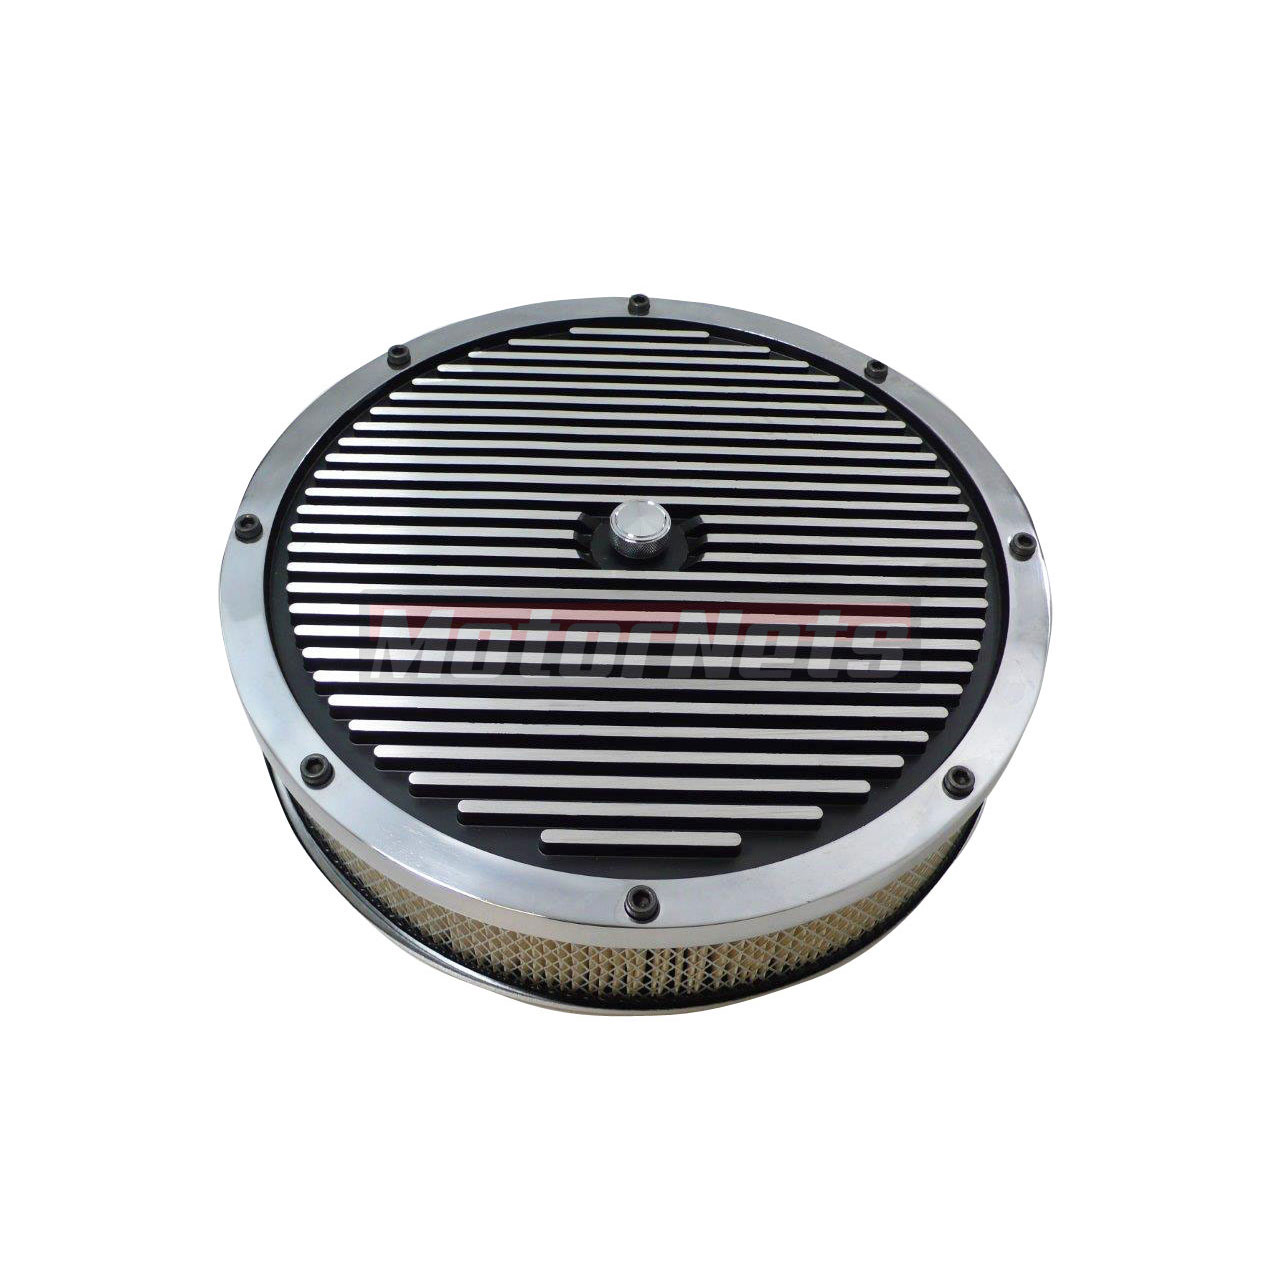 Finned Air Cleaner : Quot round elite style aluminum air cleaner finned black